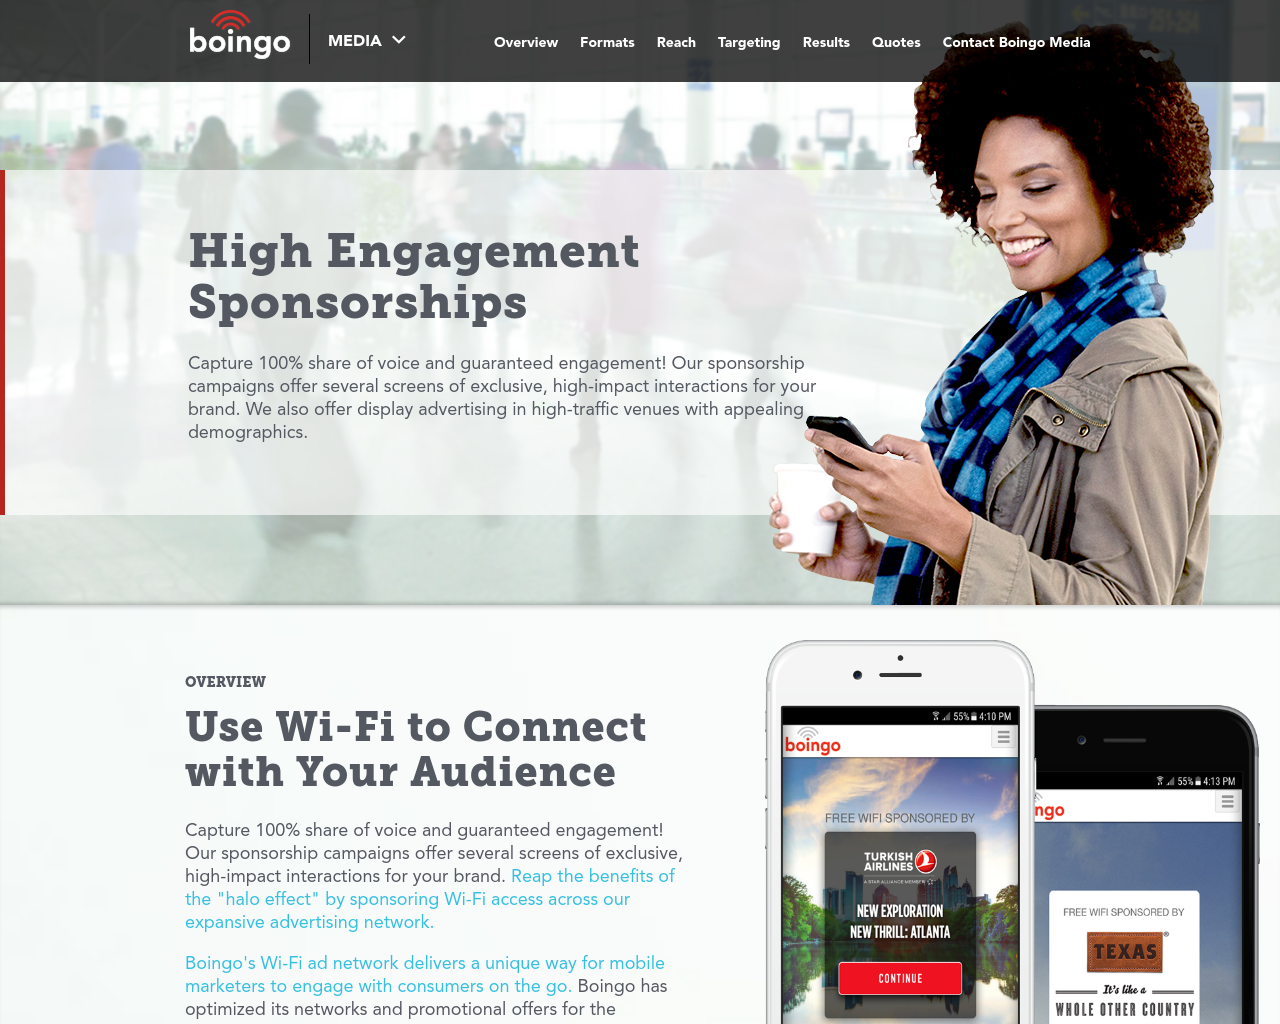 Boingo-Advertising-Reviews-Pricing